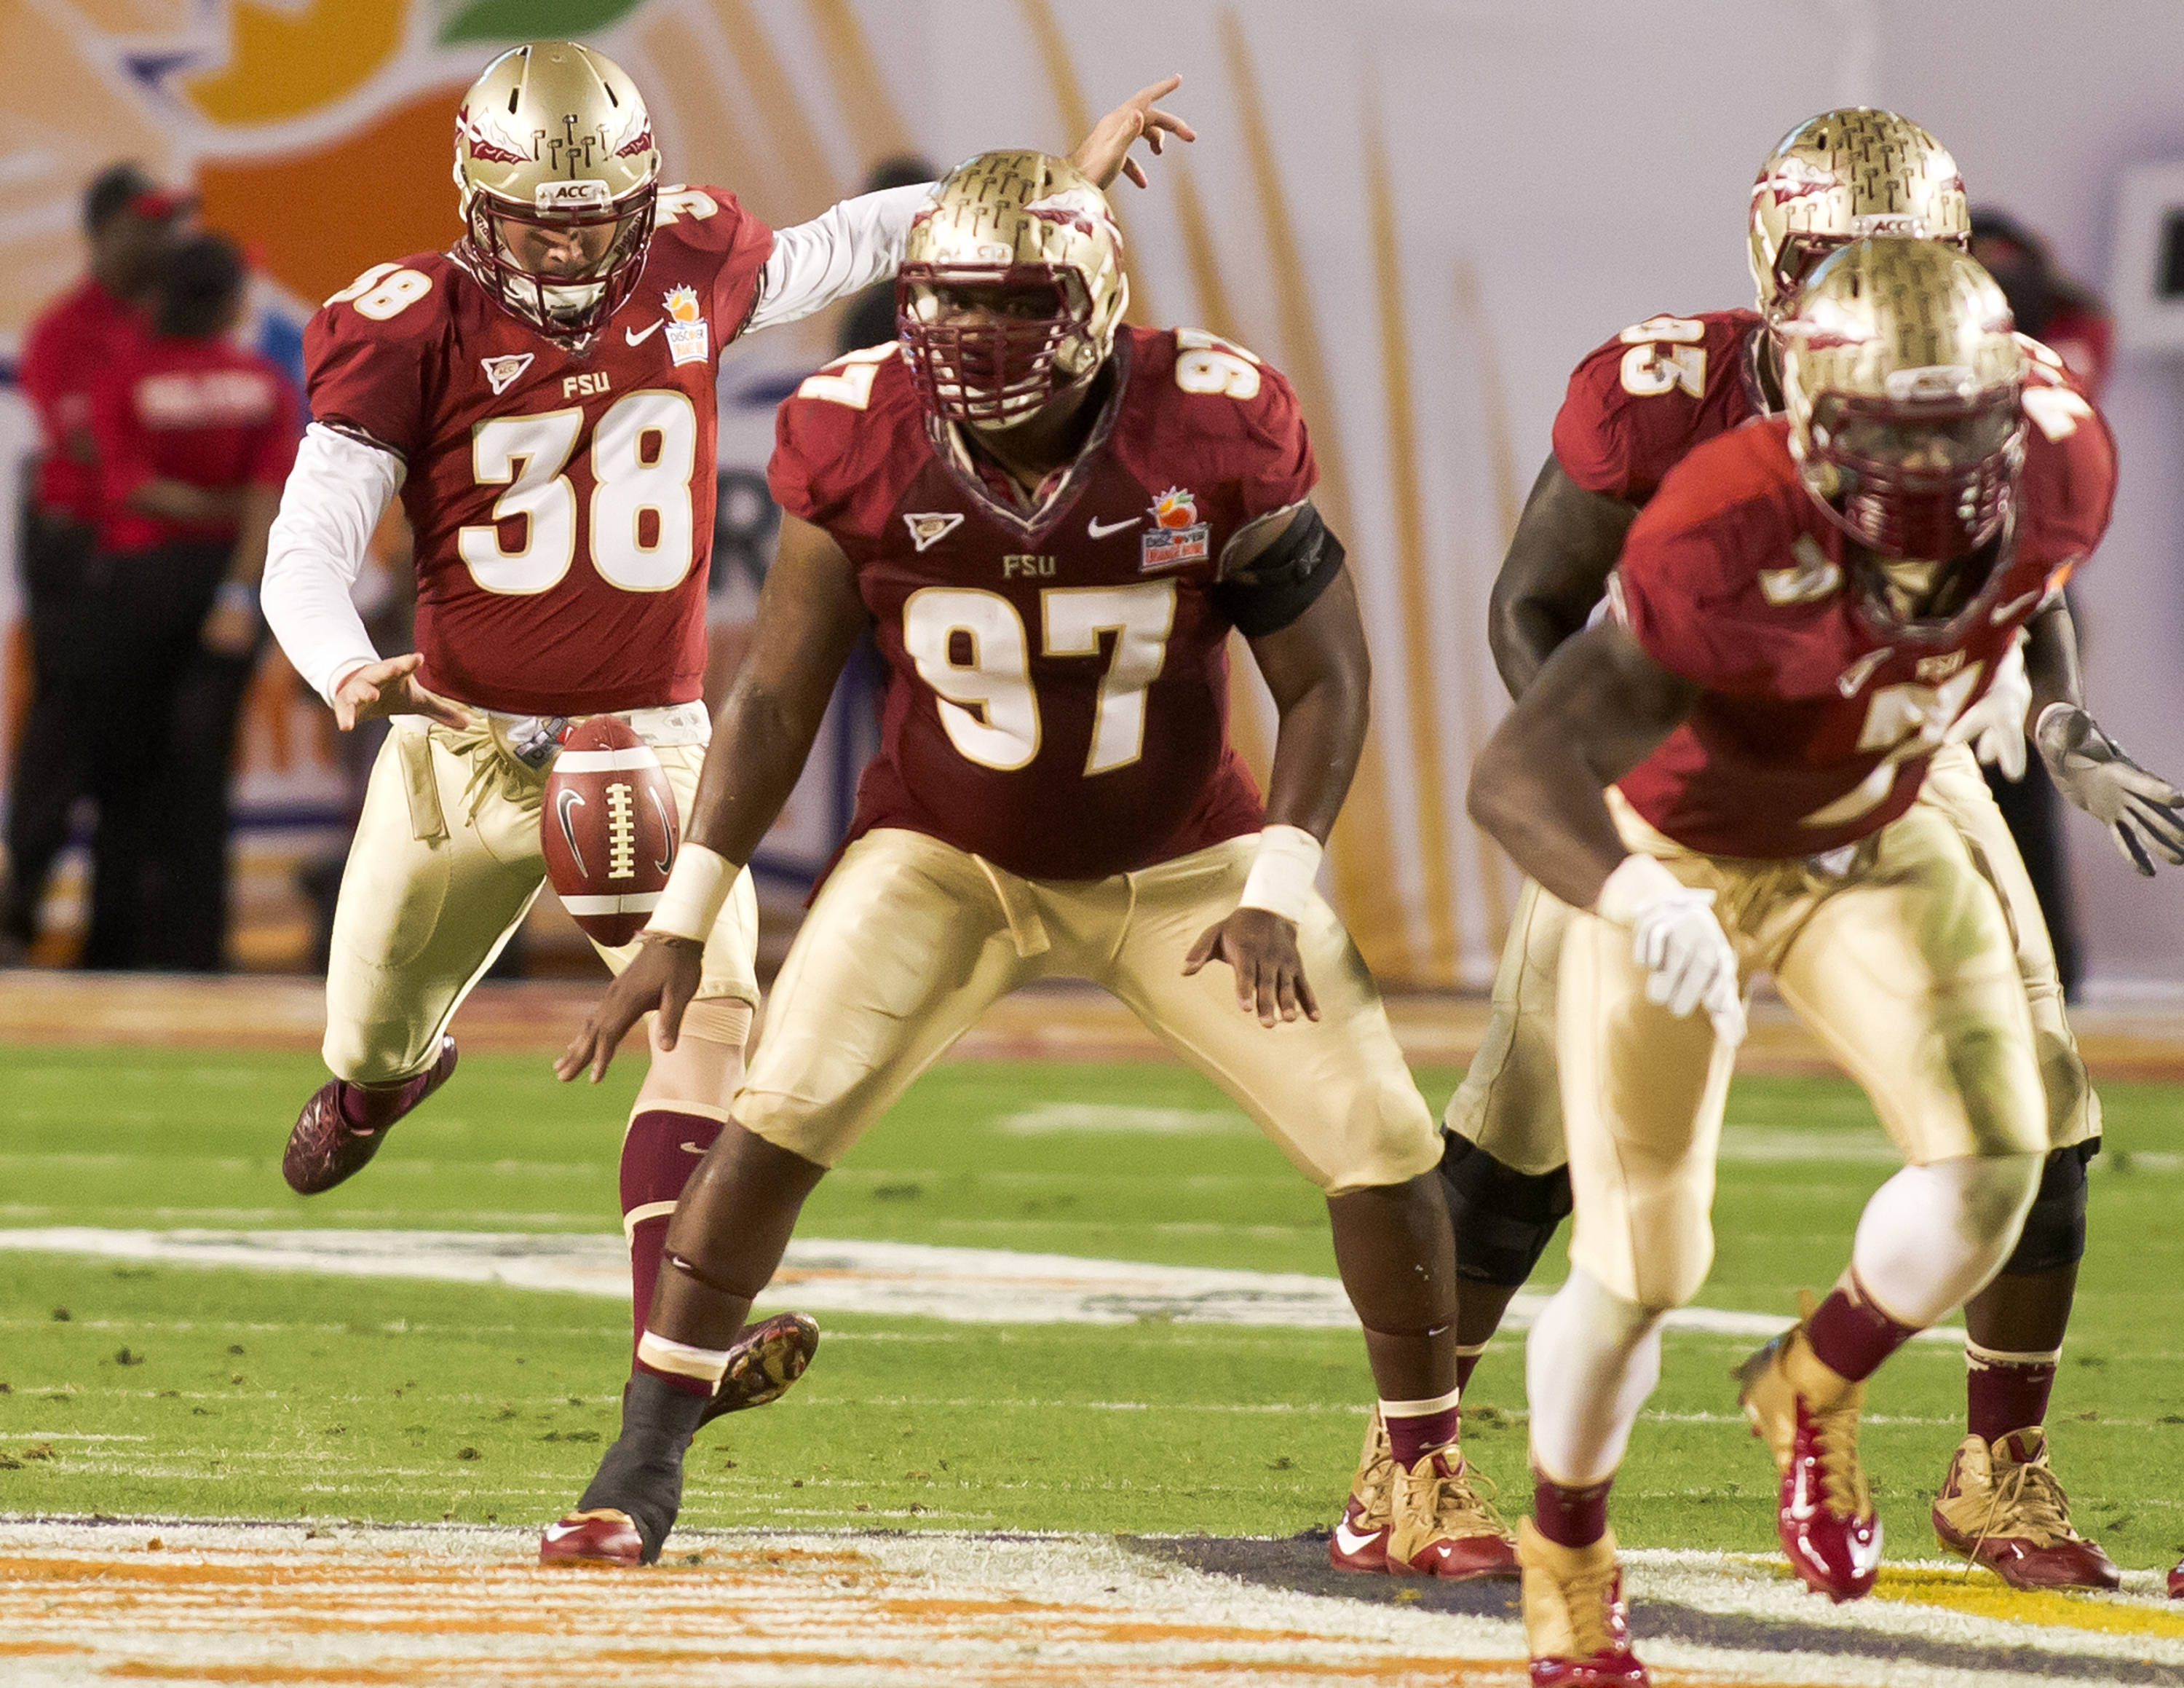 Cason Beatty (38), Demonte McAllister (97), FSU vs No. Illinois, 01/01/13. (Photo by Steve Musco)